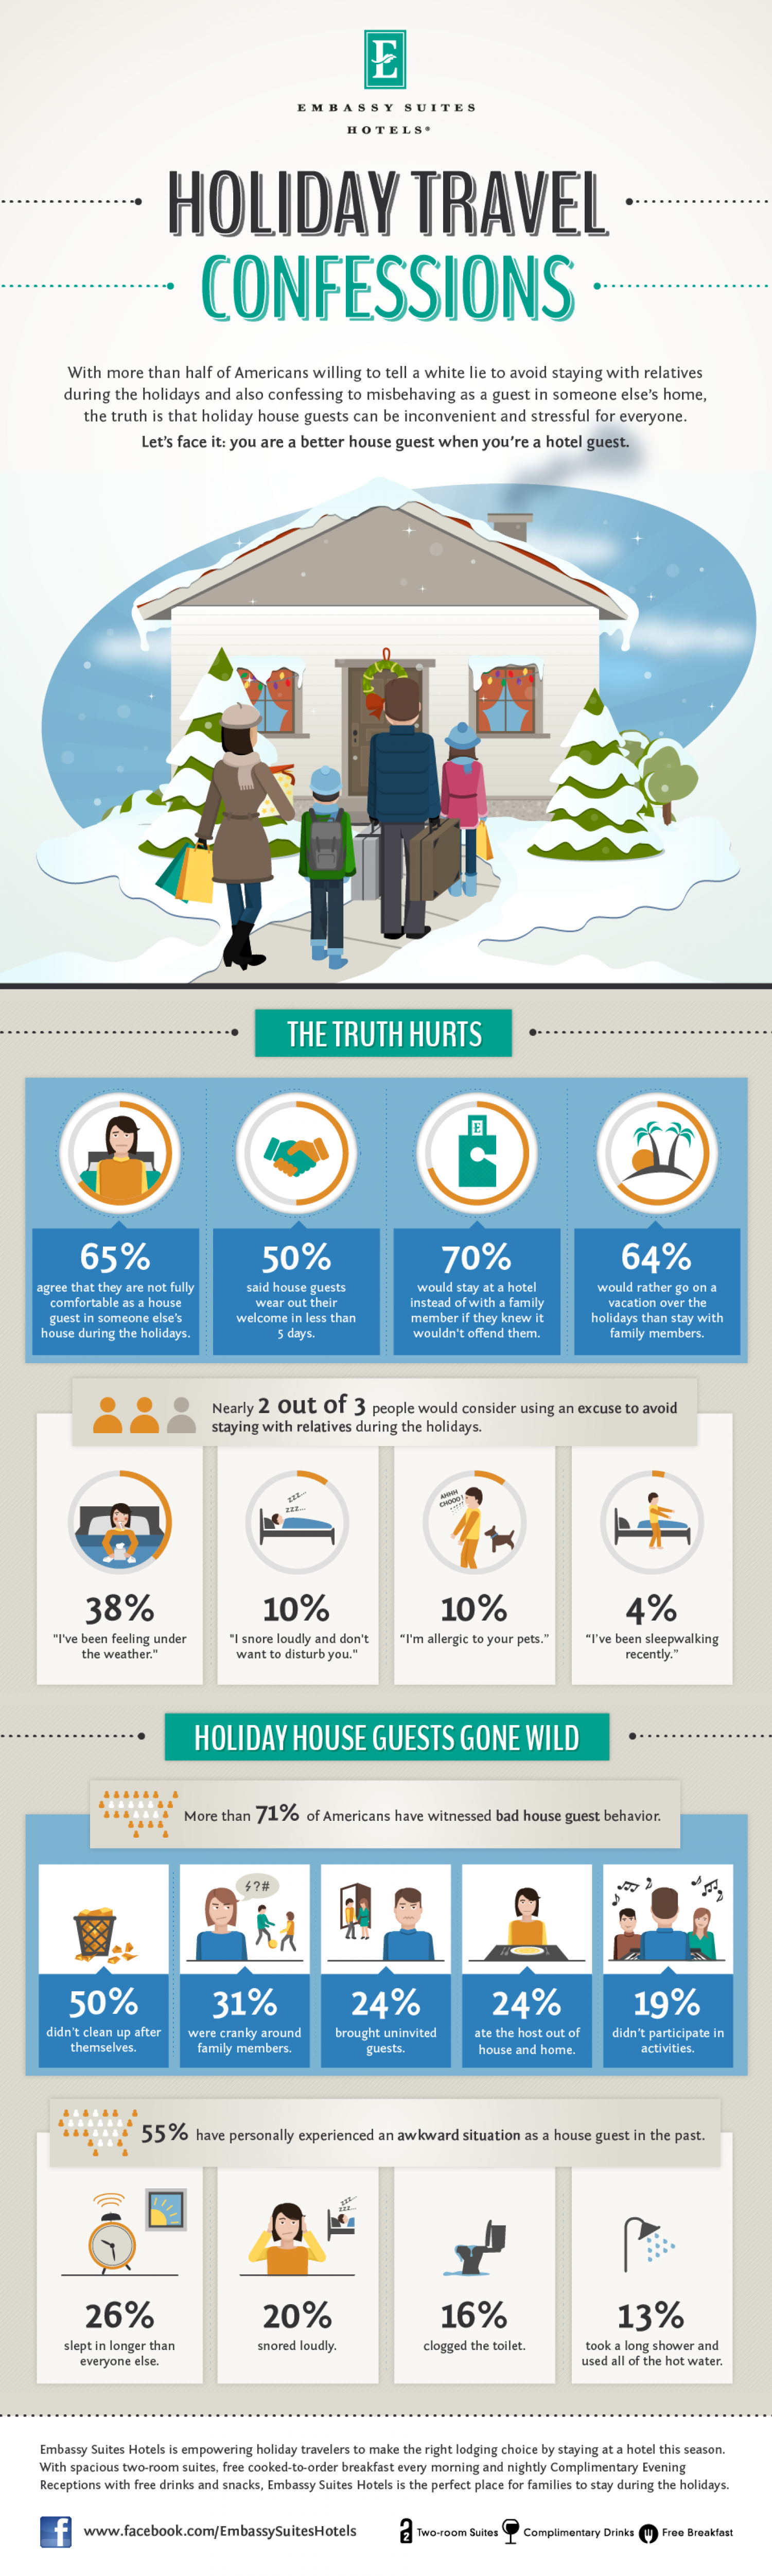 Embassy Suites Holiday Travel Confessions Infographic